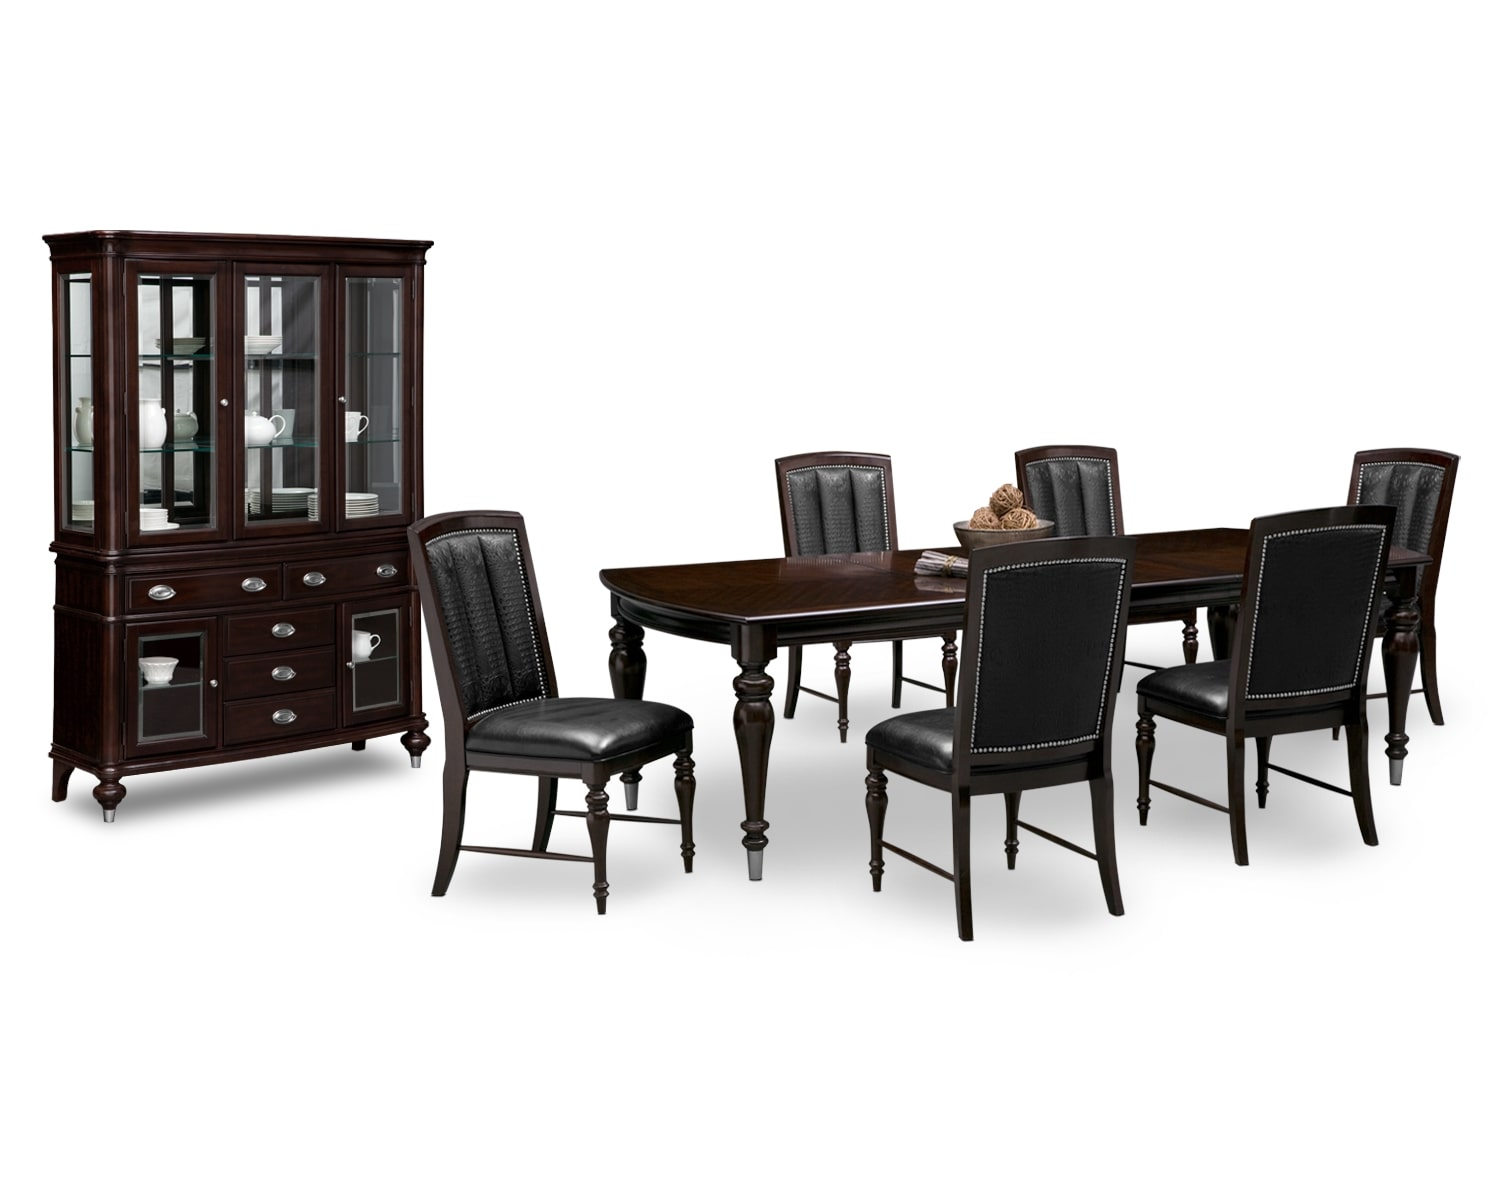 Value City Dining Room Tables Dining Room Furniture Brands Value City Furniture